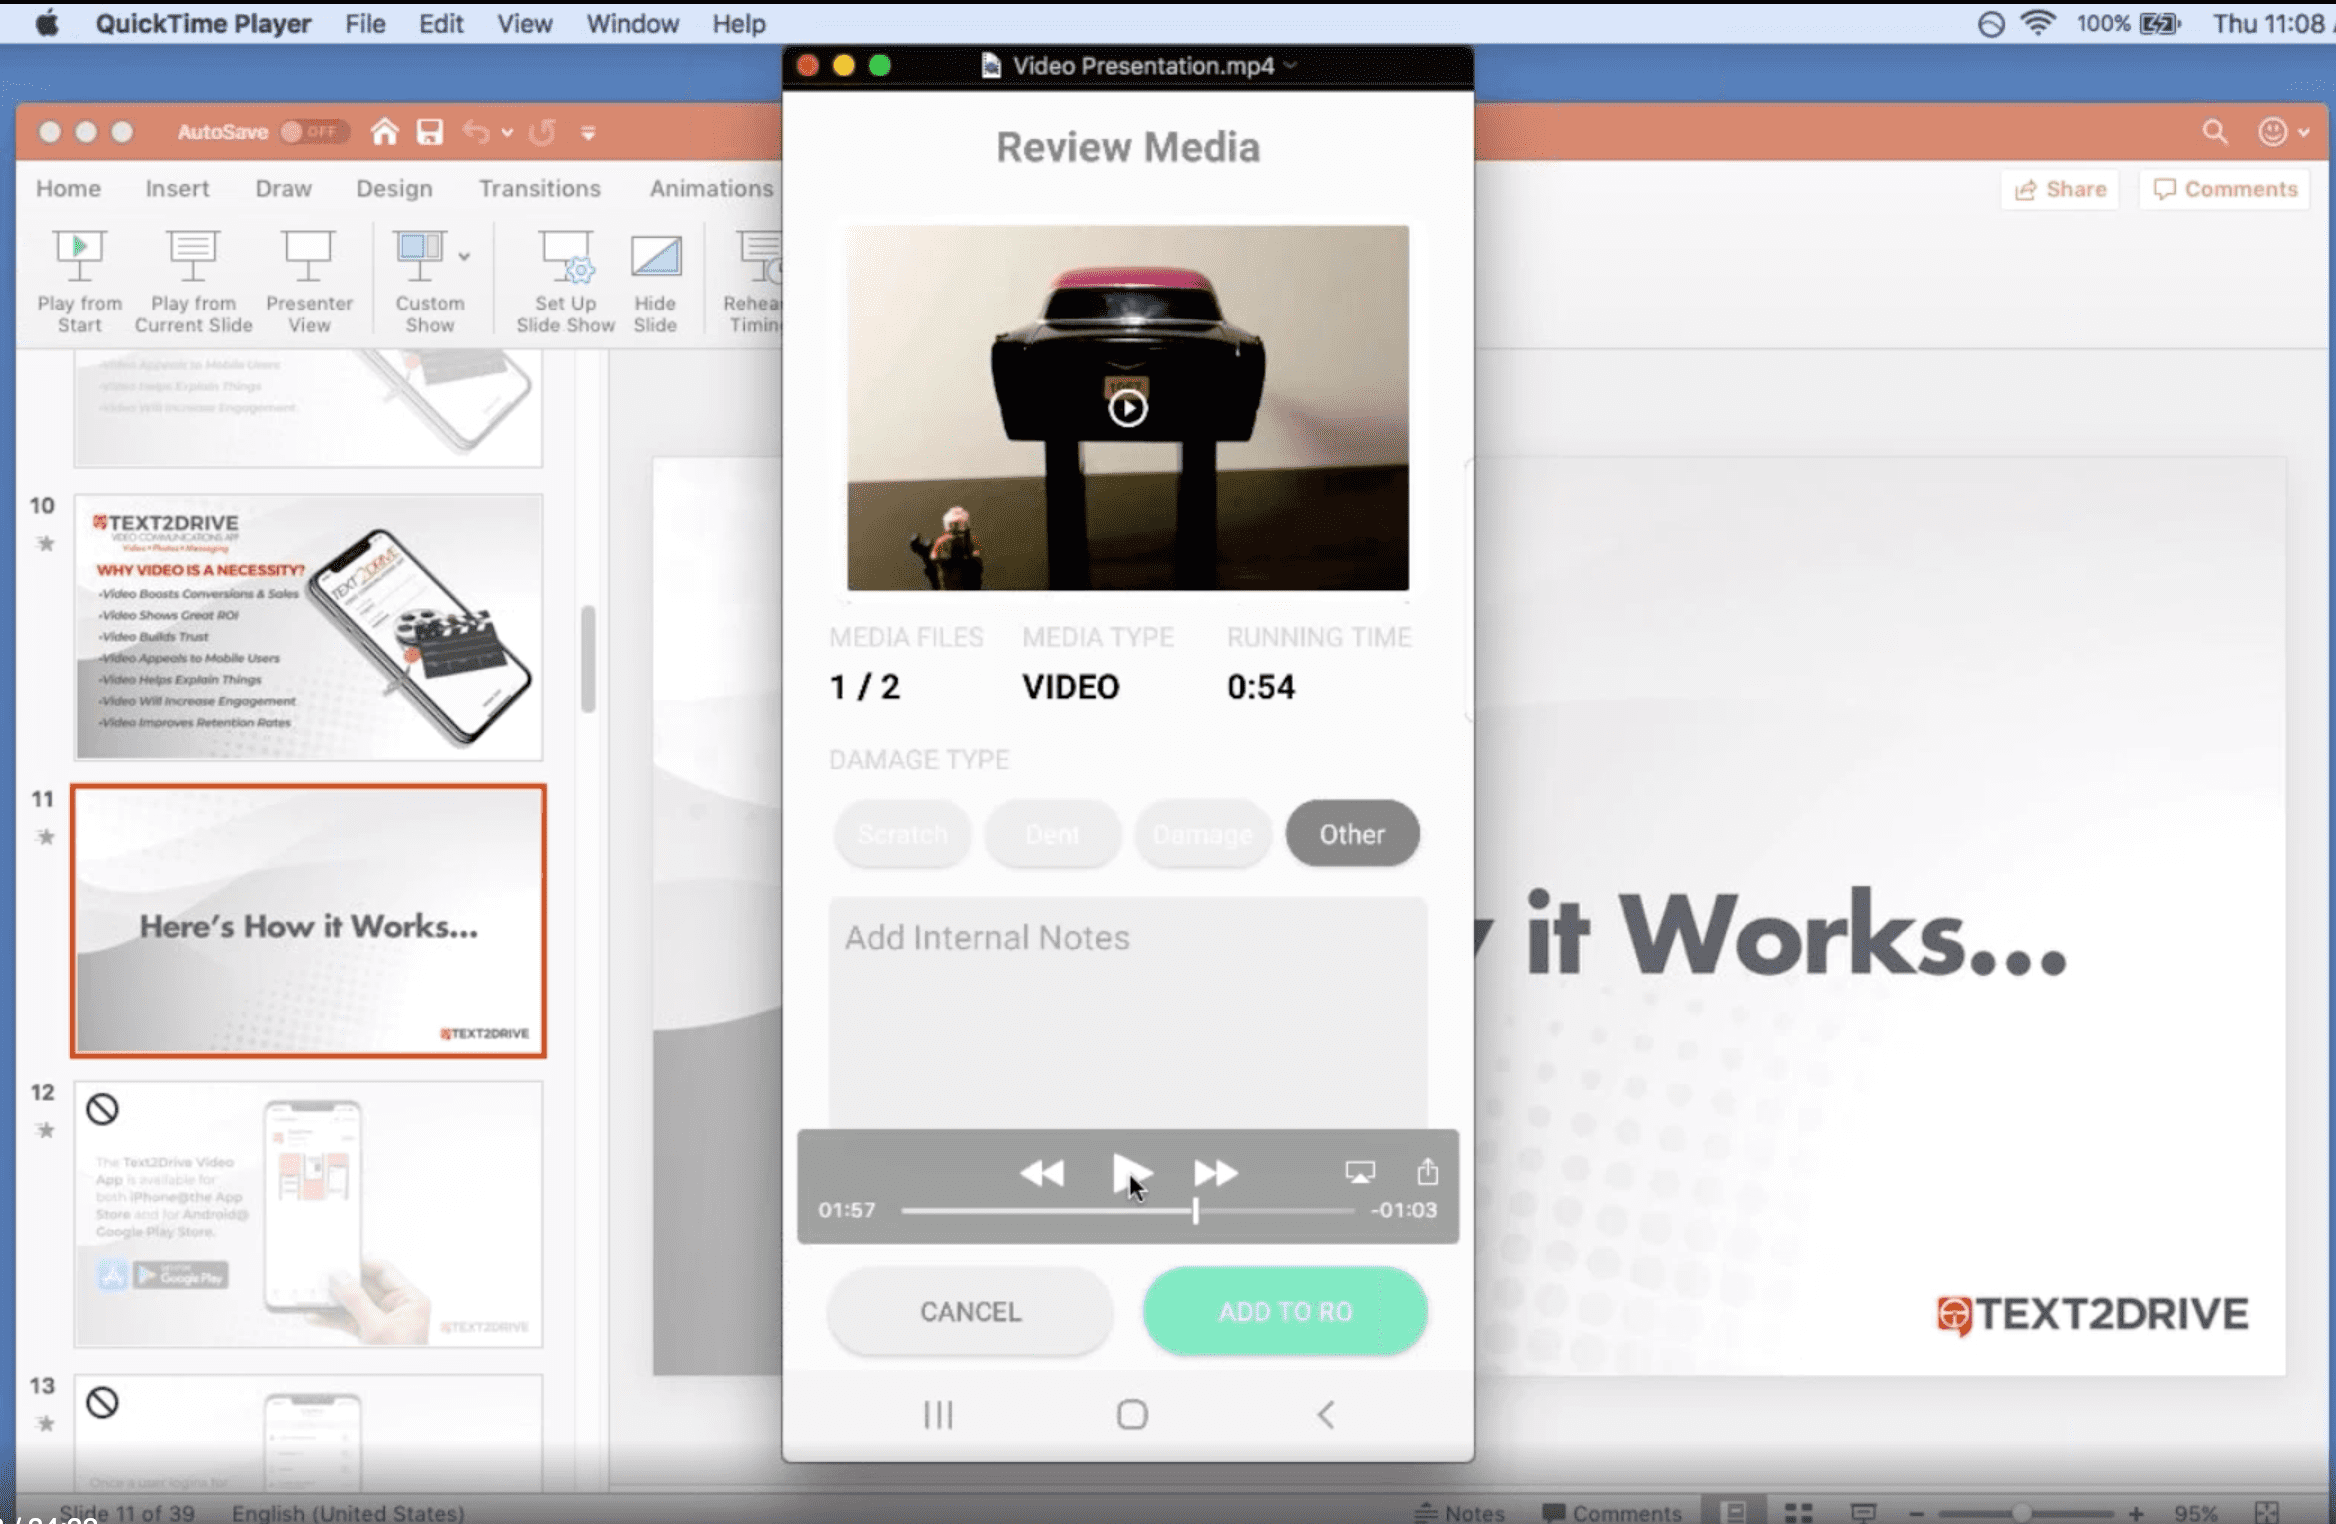 Video Webinar How The App Works & How To Review Media Library